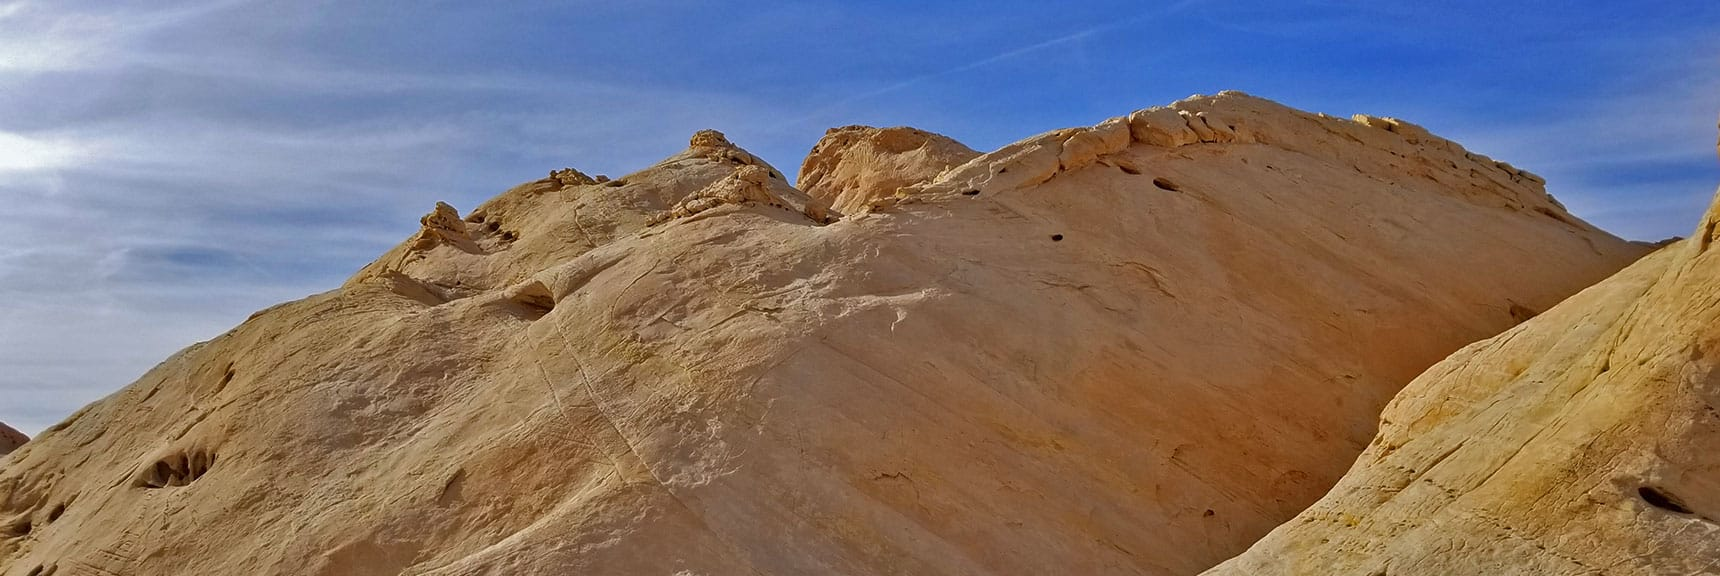 Rounding and Exploring Silica Dome in Valley of Fire State Park, Nevada